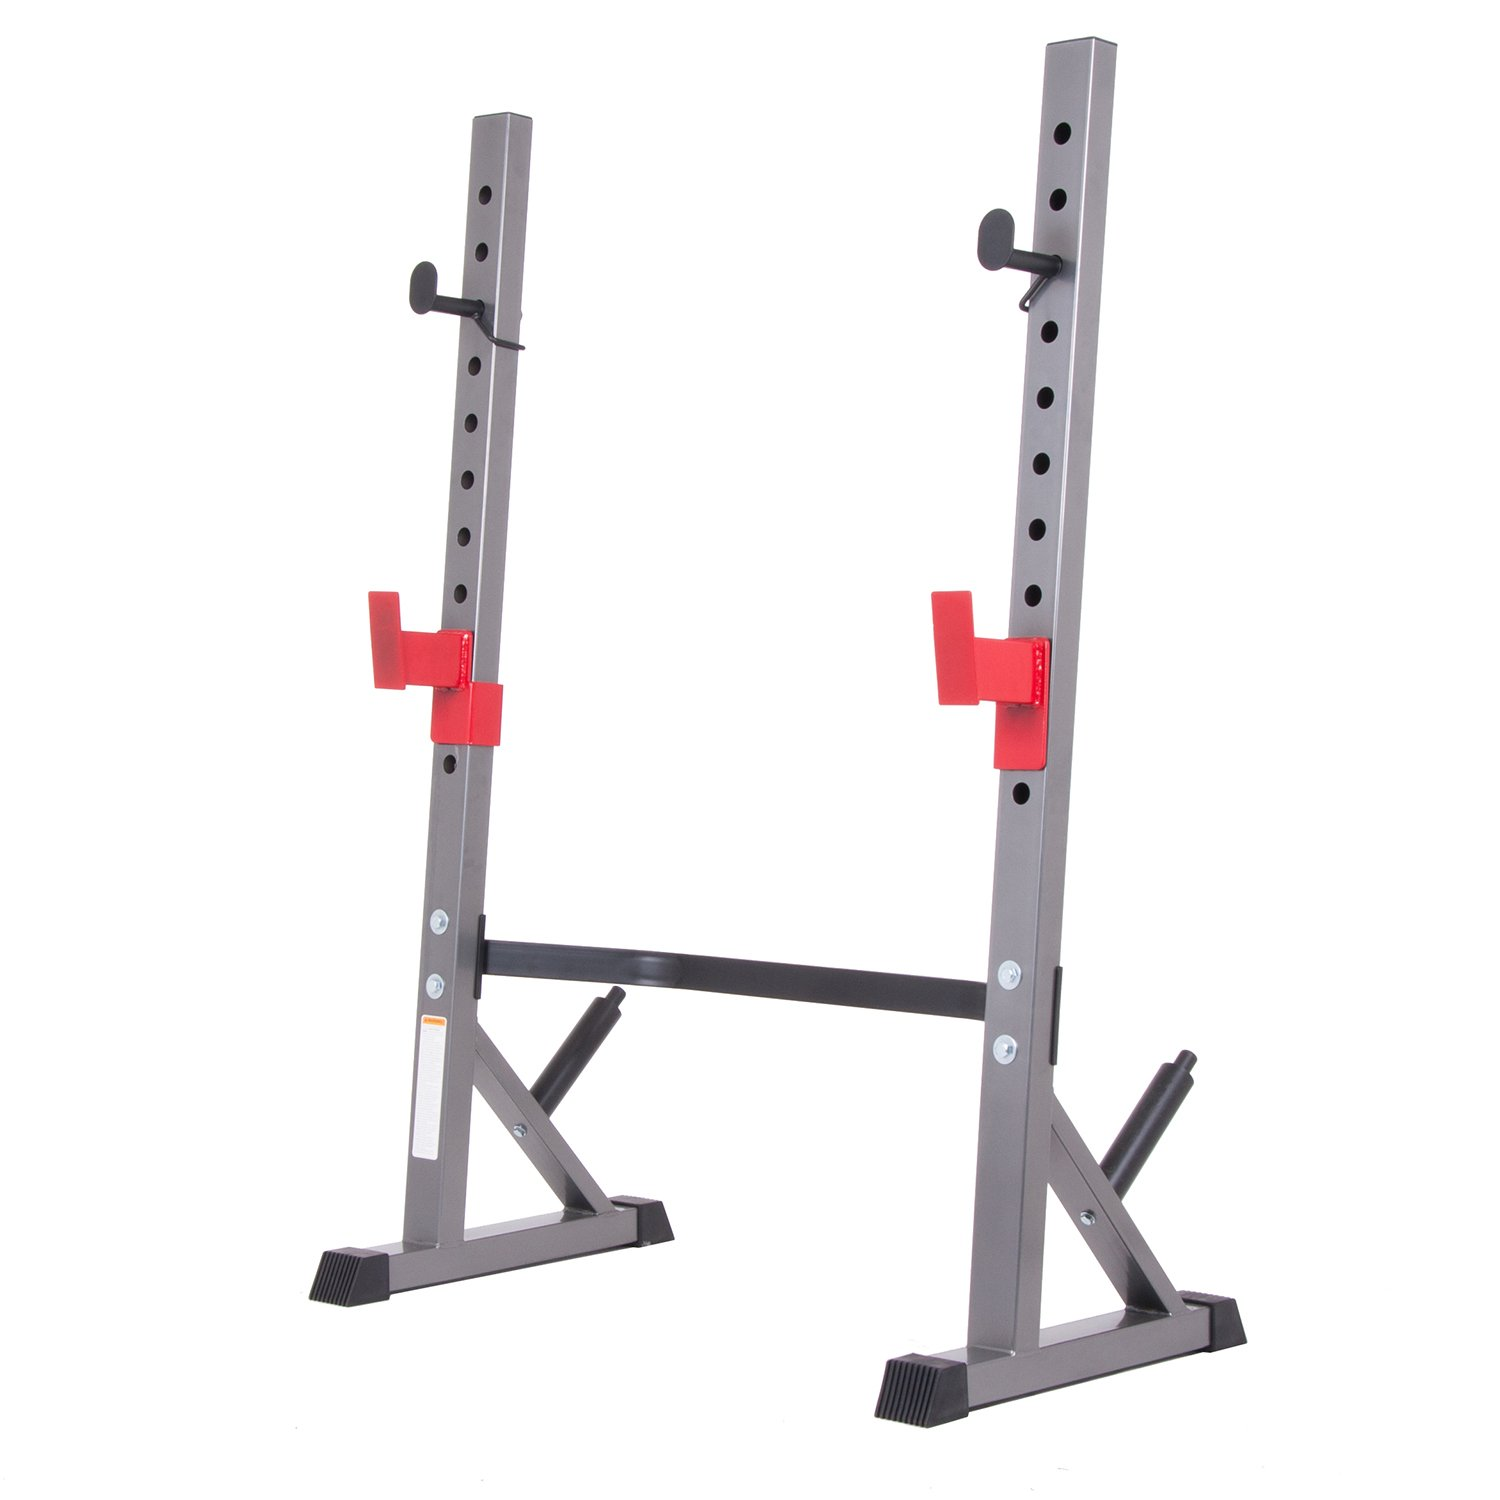 Body Champ BCB5280 Olympic Weight Bench with Adjustable Rack, Black Gray Silver Red